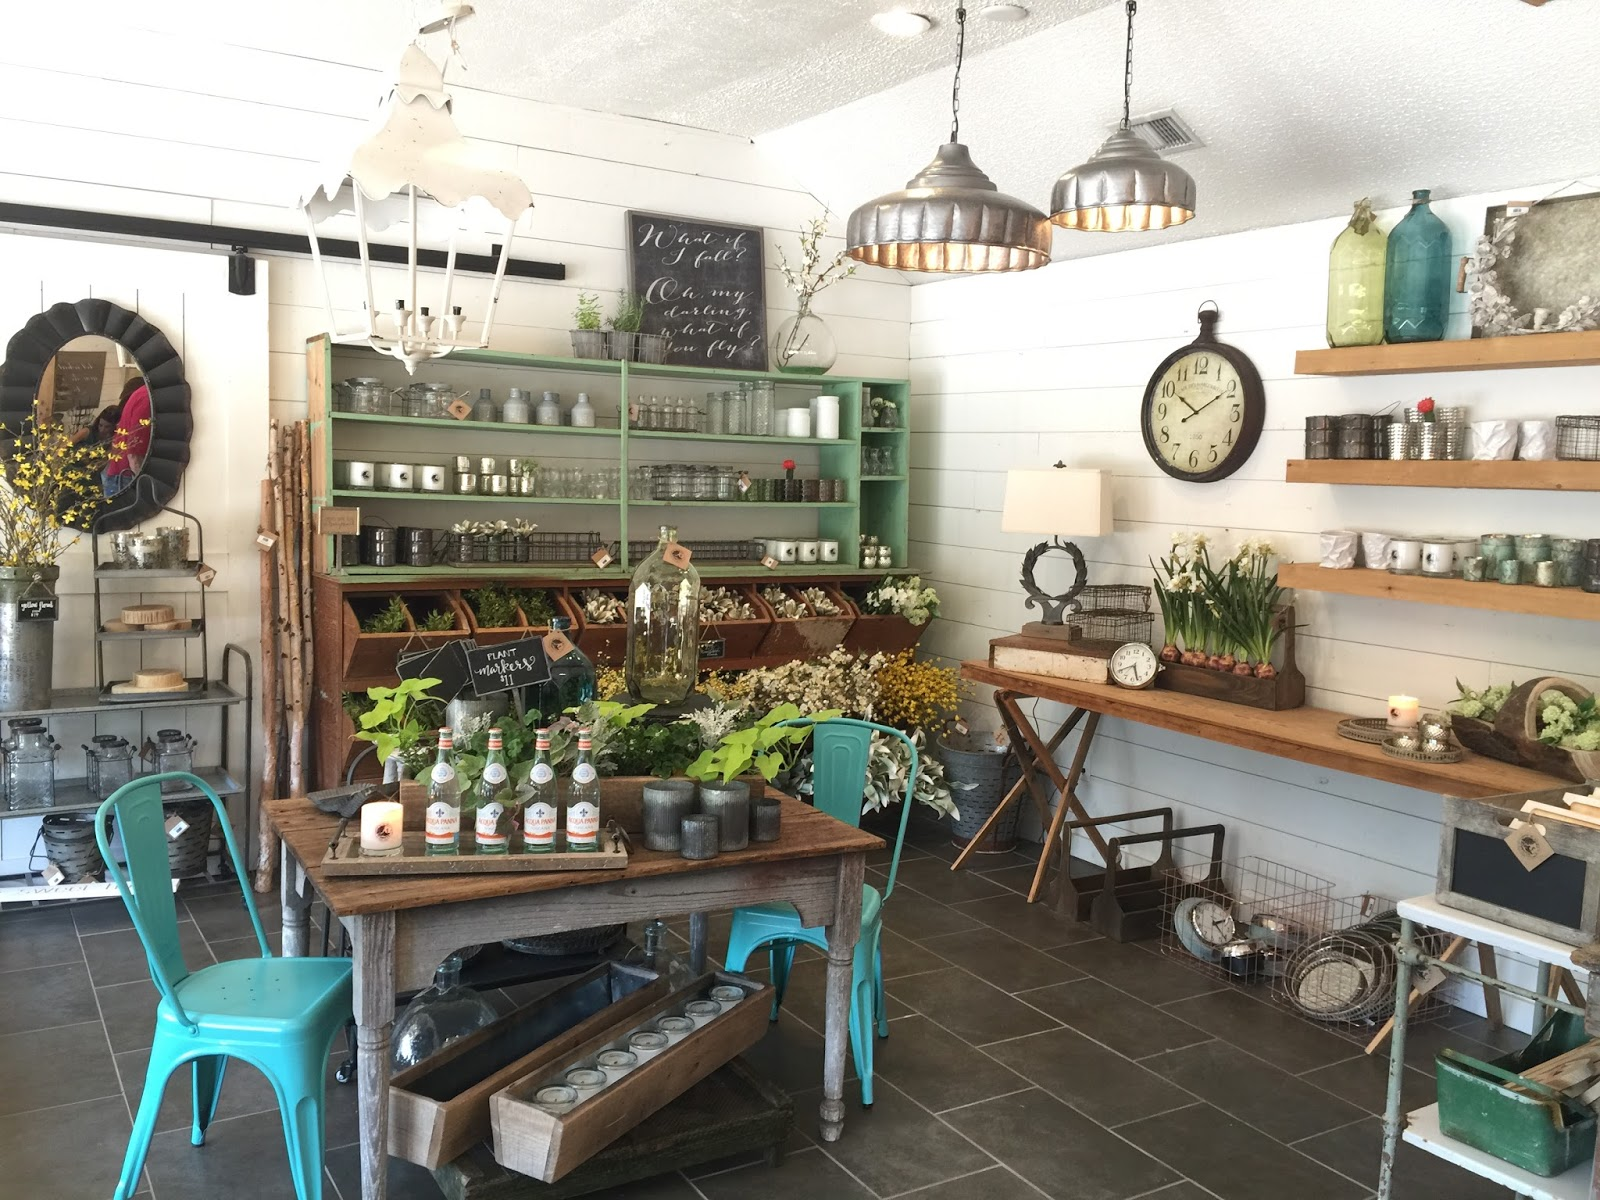 Jenna Blogs: Our Trip To Magnolia Market, Junque In The